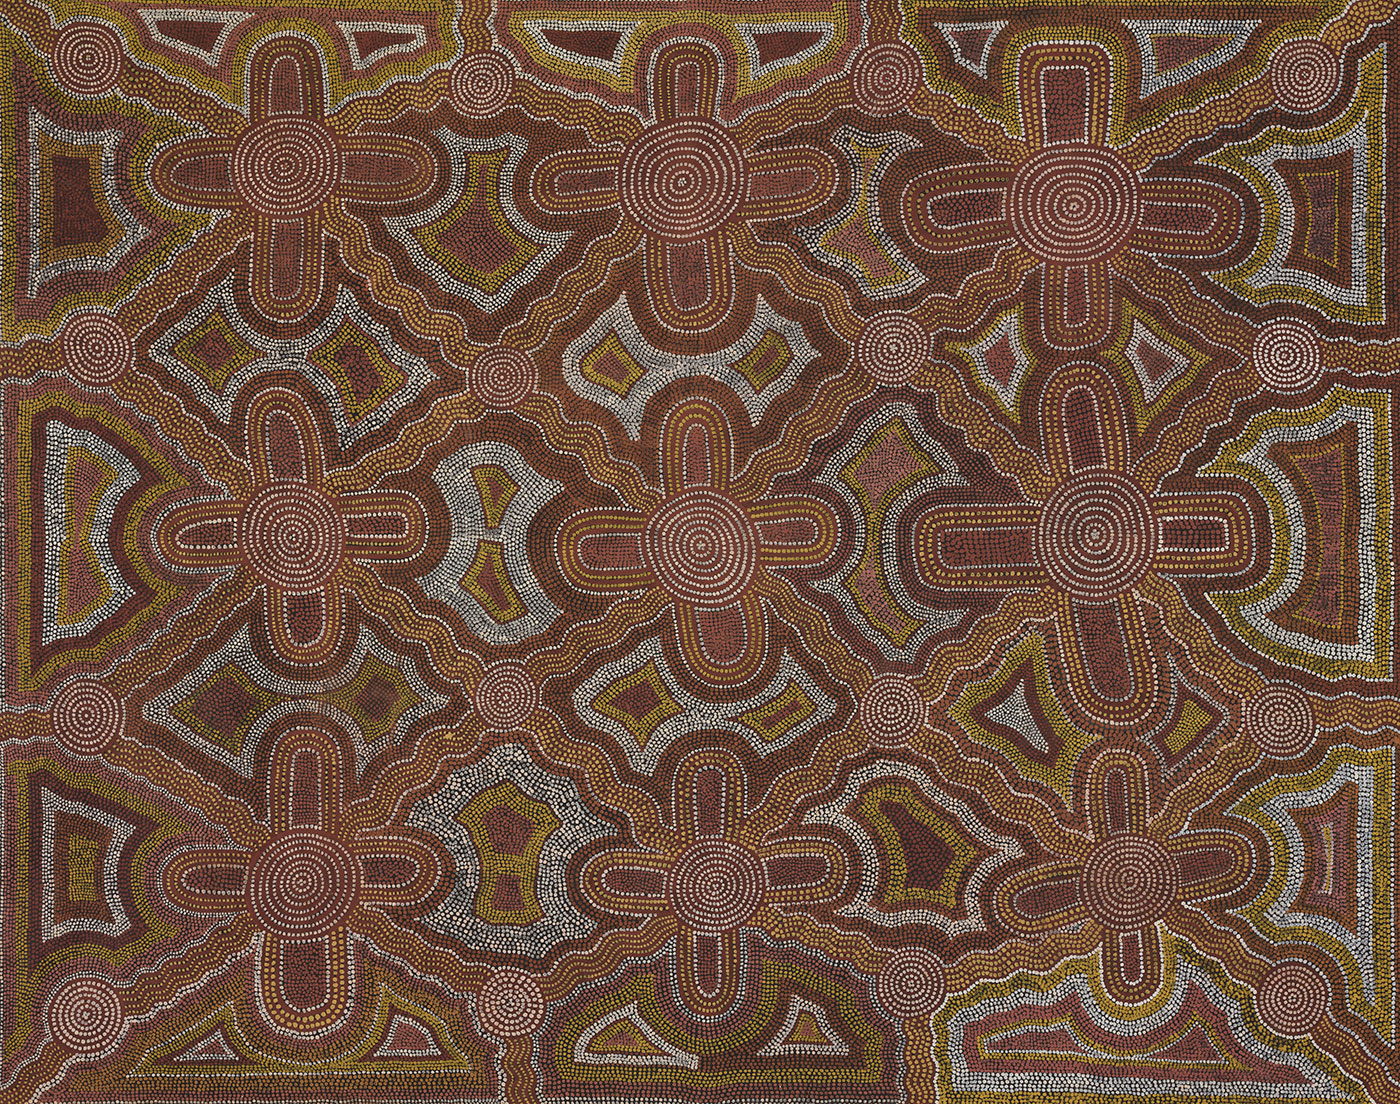 Aboriginal painting. - click to view larger image